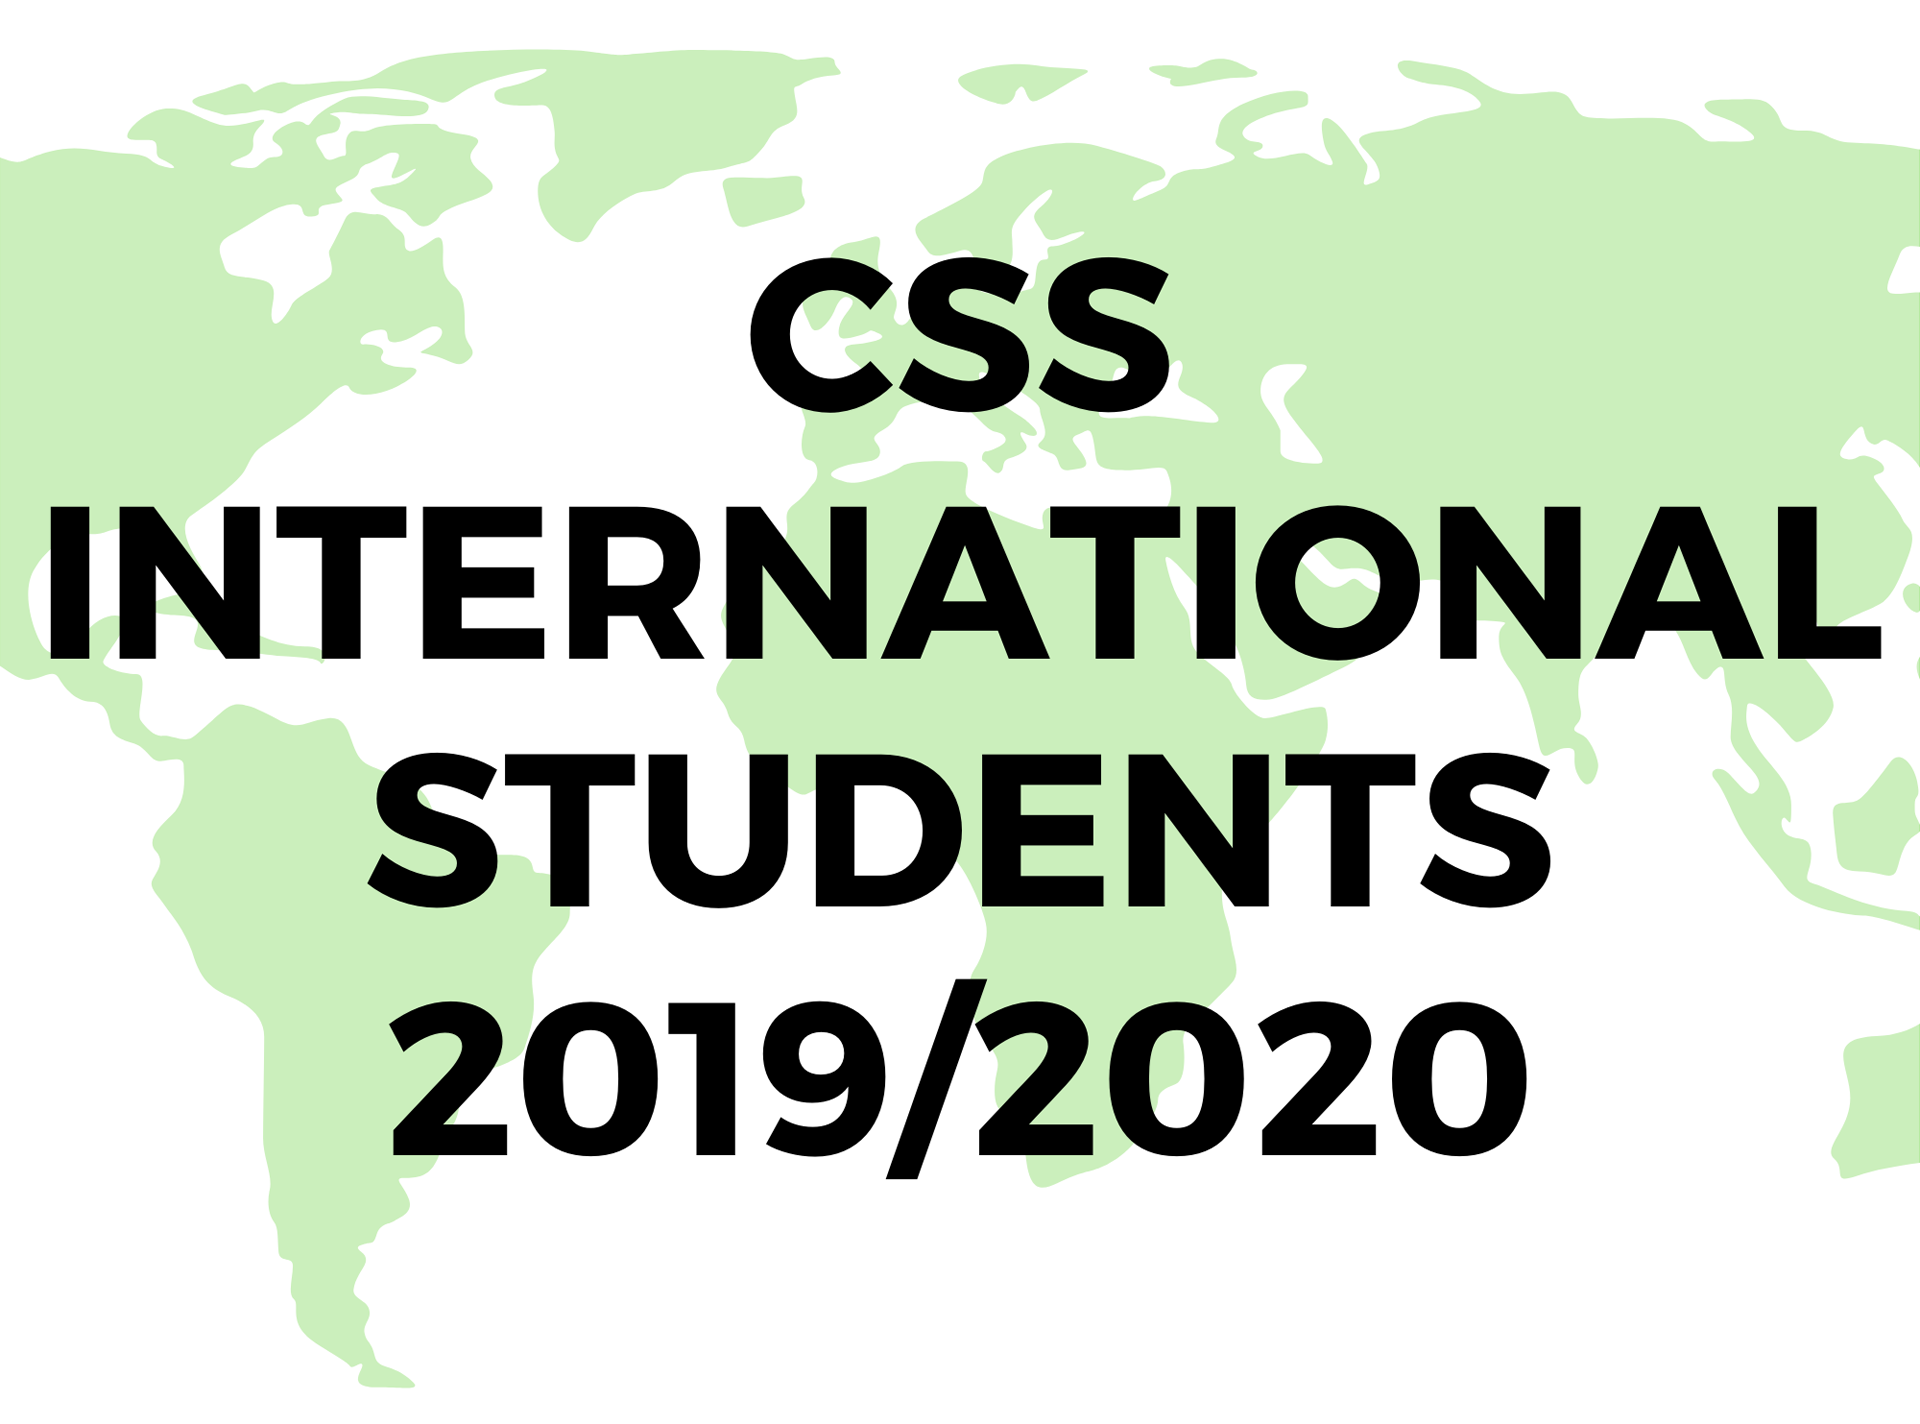 CSS International Students 2019 2020